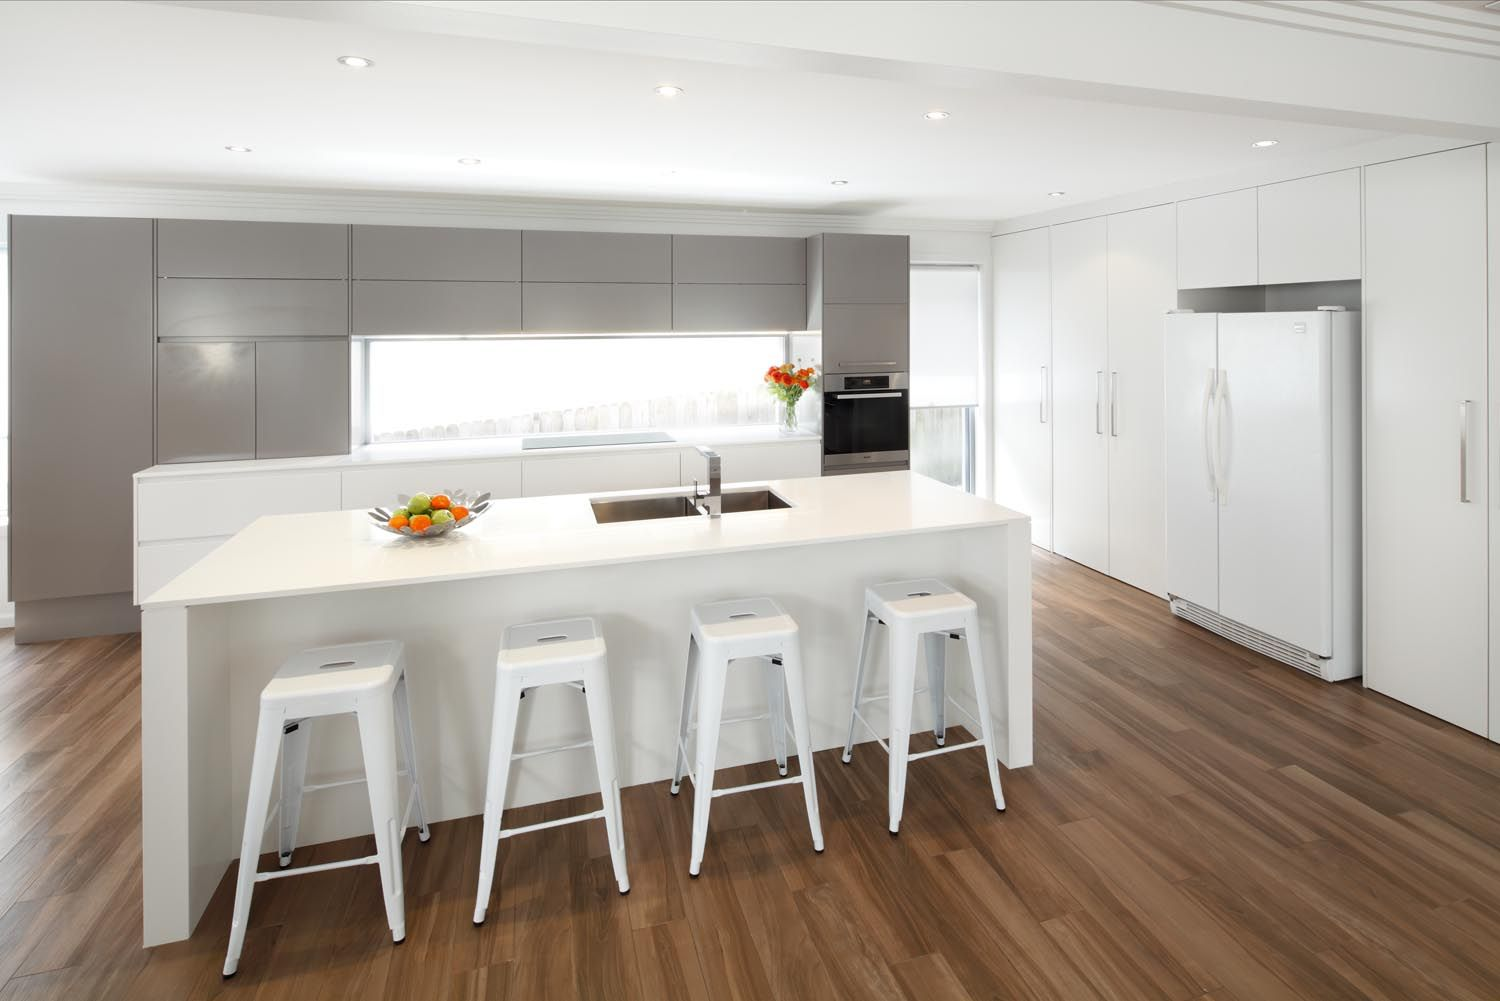 This Sleek Modern Kitchen Design Incorporates White Silver And Beautiful Timber Flooring